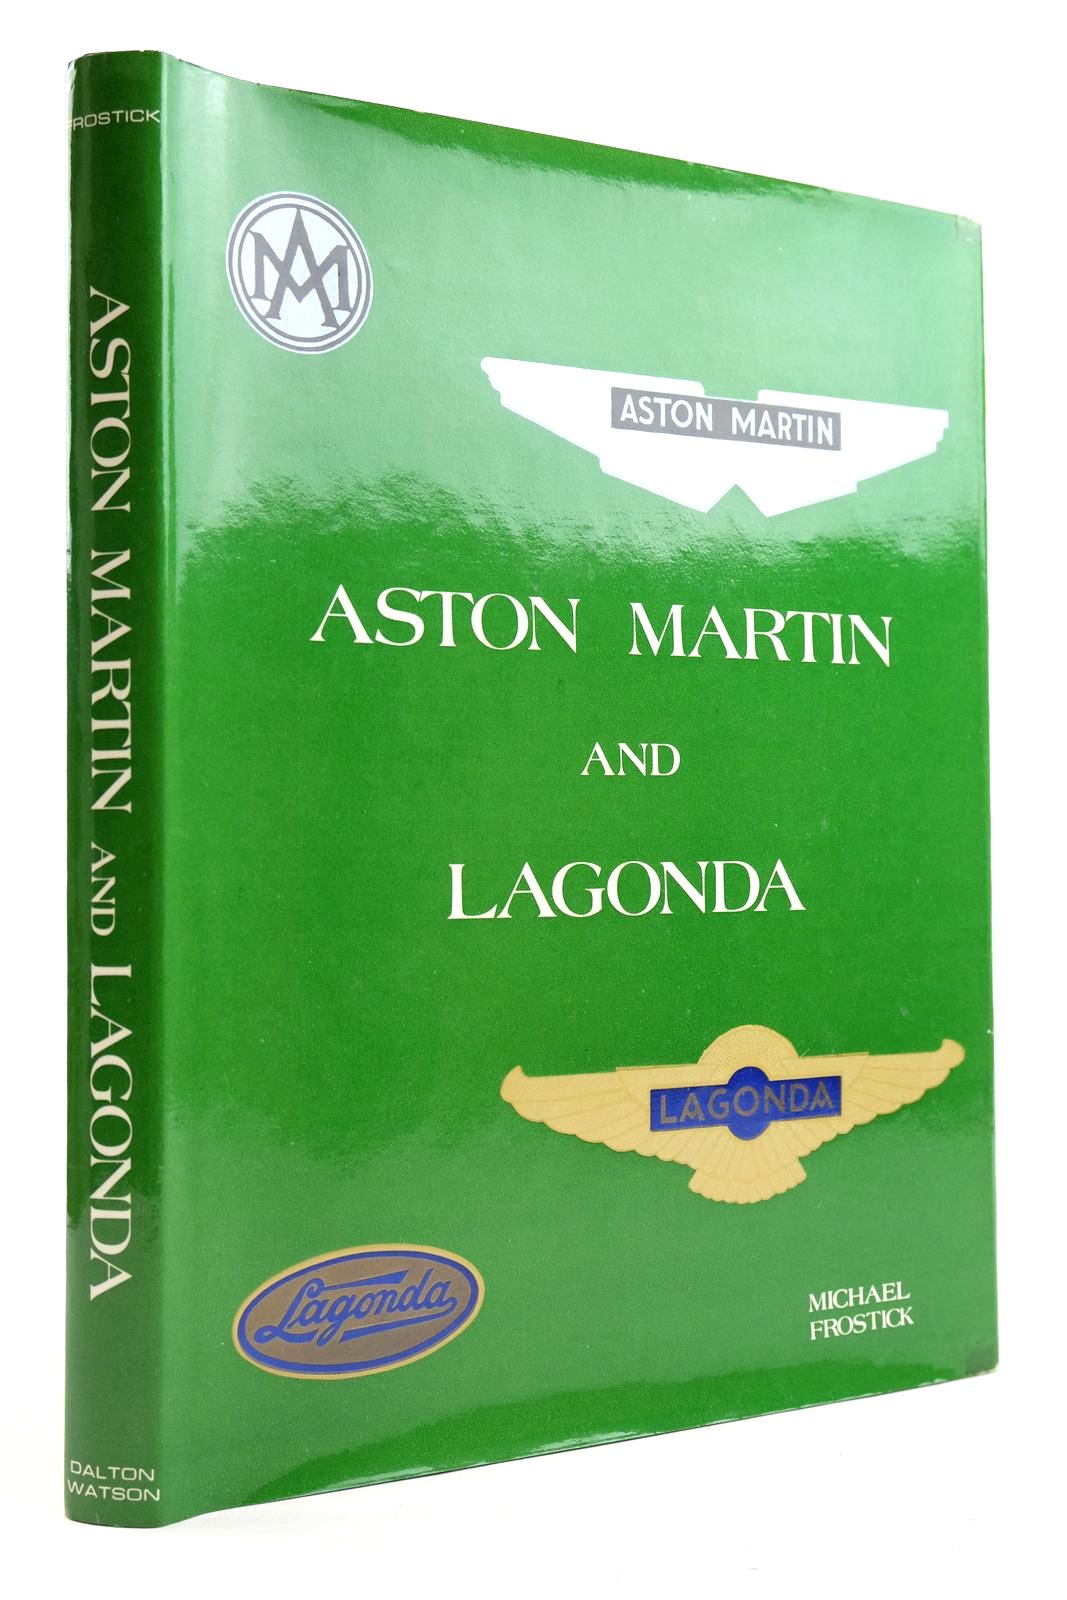 Photo of ASTON MARTIN AND LAGONDA written by Frostick, Michael published by Dalton Watson (STOCK CODE: 2133093)  for sale by Stella & Rose's Books